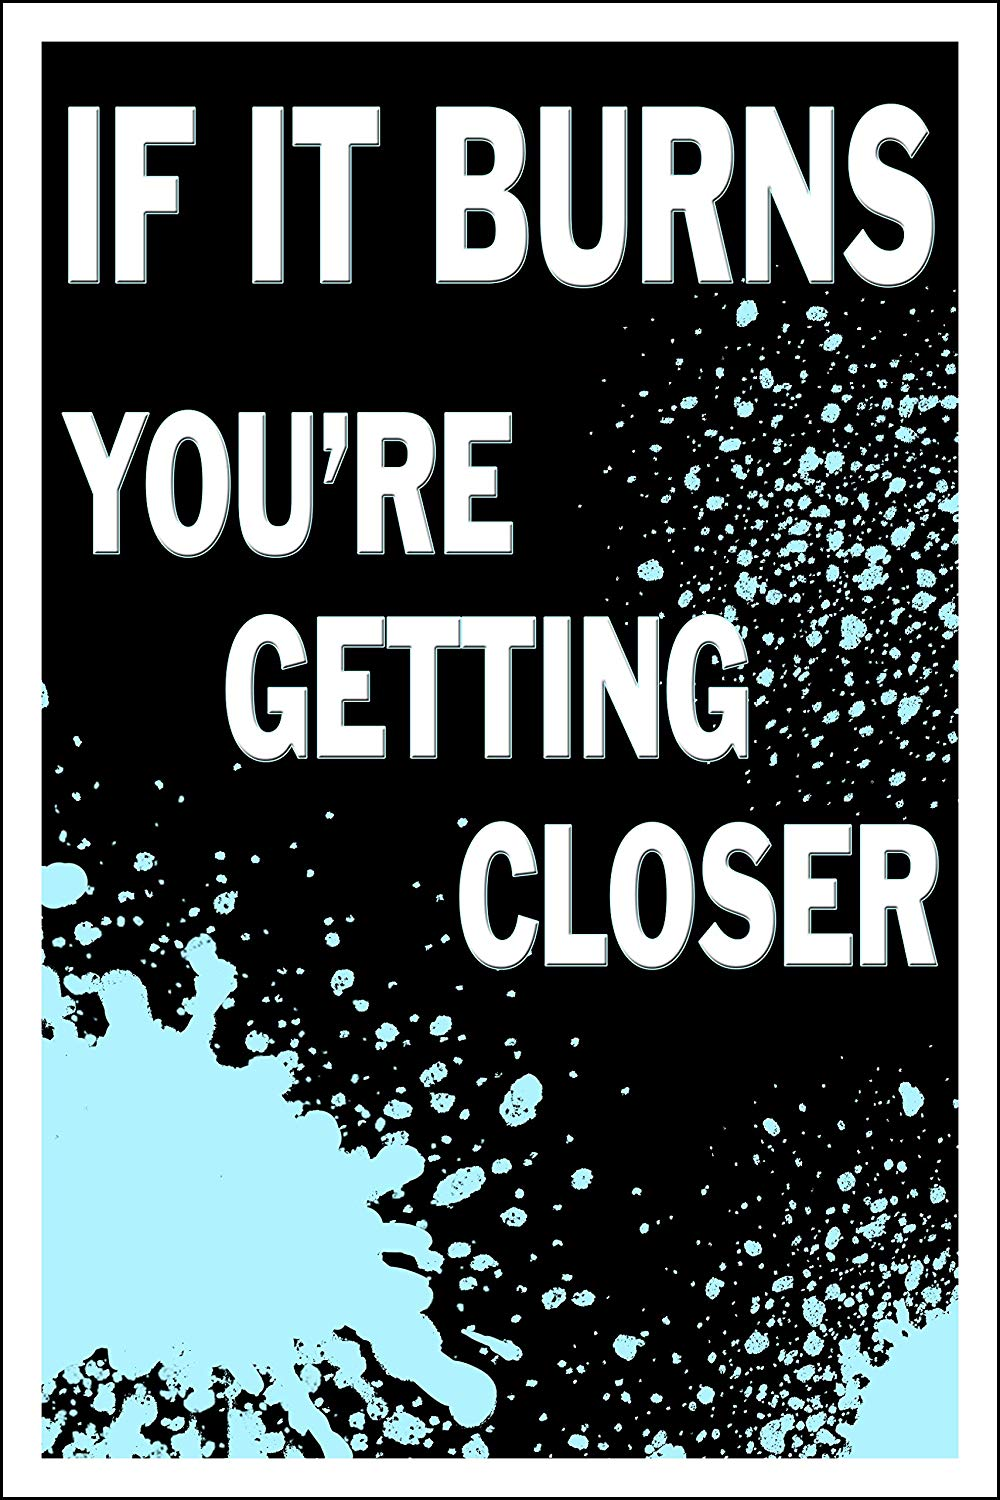 "Spitzy's If It Burns You're Getting Closer Motivational Fitness Workout Poster (12"" x 18"" Dimensions Include a White .5"" Border)"